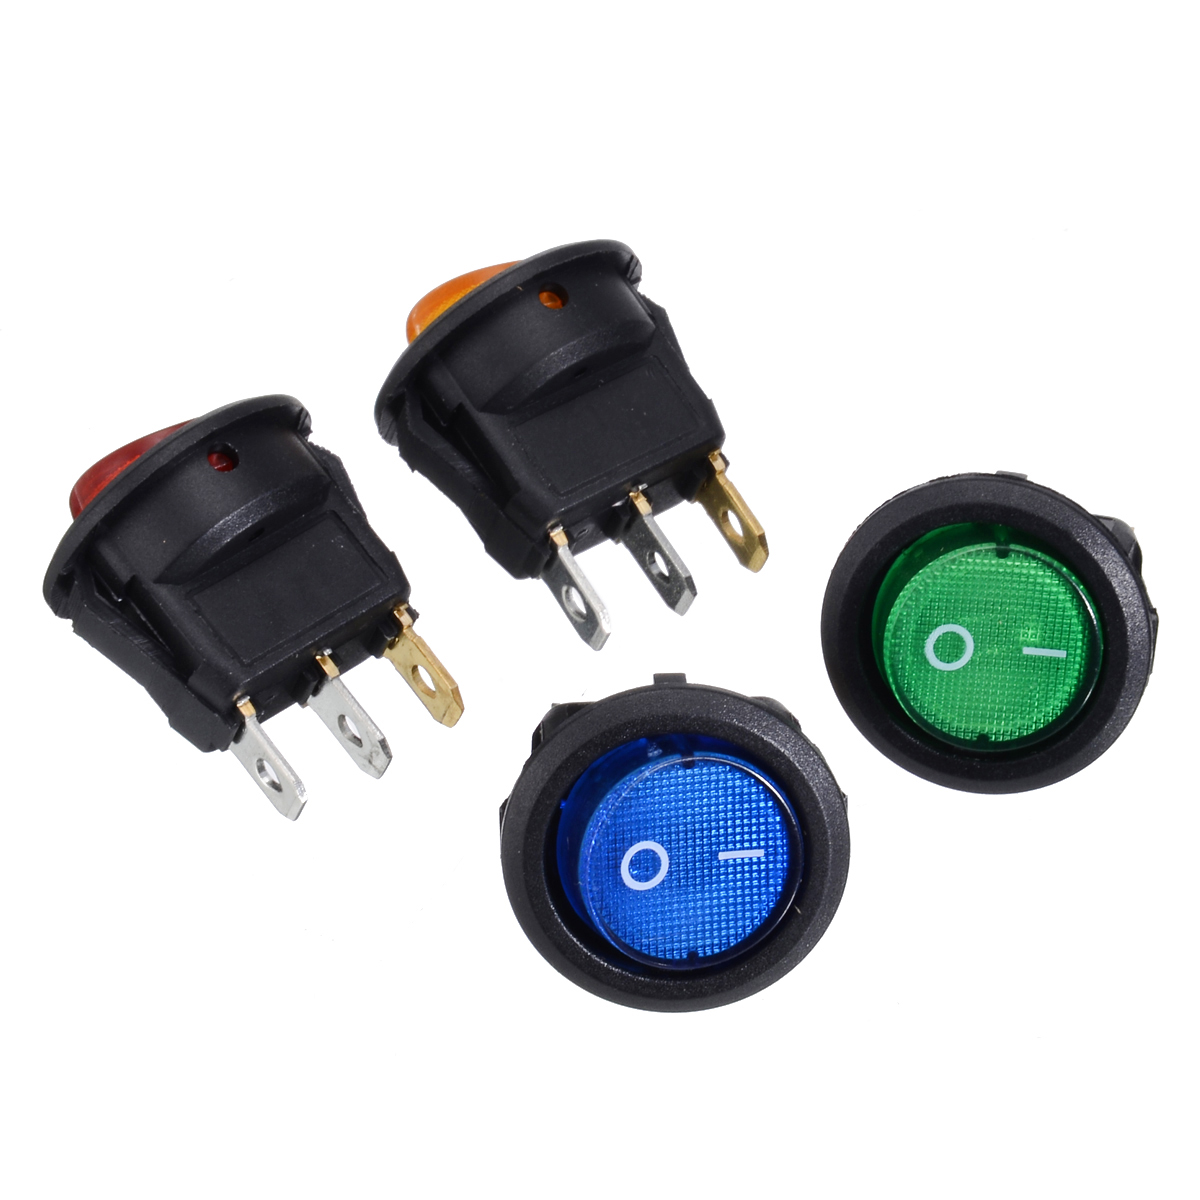 Image 5 - 4pcs/set LED 12V 16A Car Boat ON/OFF LED Round Dot Rocker Toggle Switch SPST Switch 4 Colors Red/ Blue/ Green/ Yellow-in Car Switches & Relays from Automobiles & Motorcycles